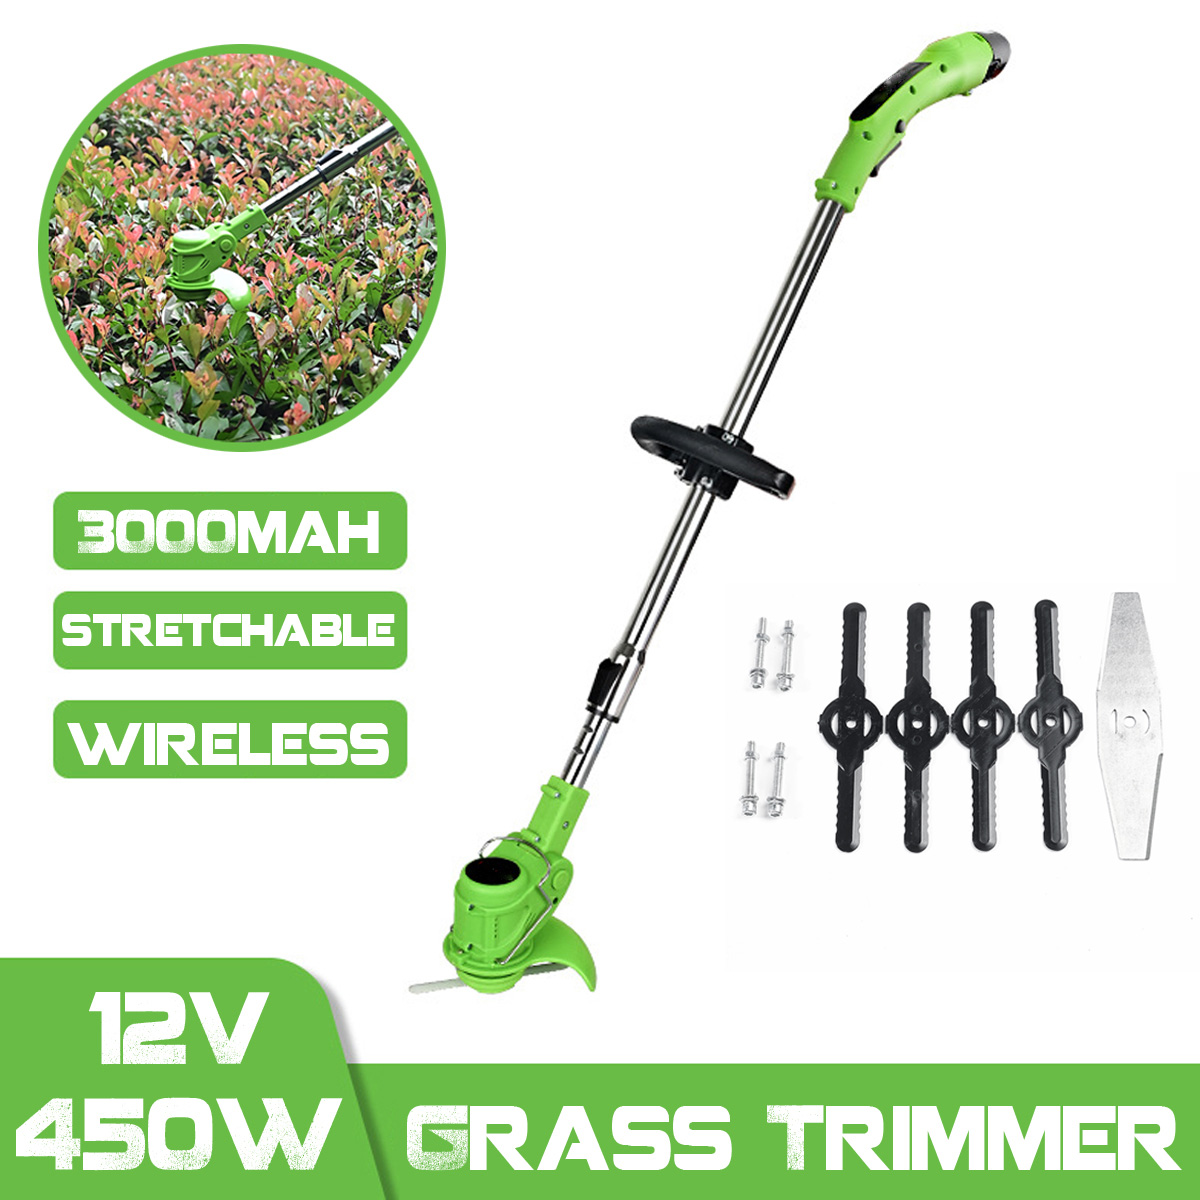 Meigar 3000mah 12V 450W Adjustable Rechargeable Wireless Grass Trimmer Electric Garden Push Lawnmower 1 Battery 1 Charger VDE